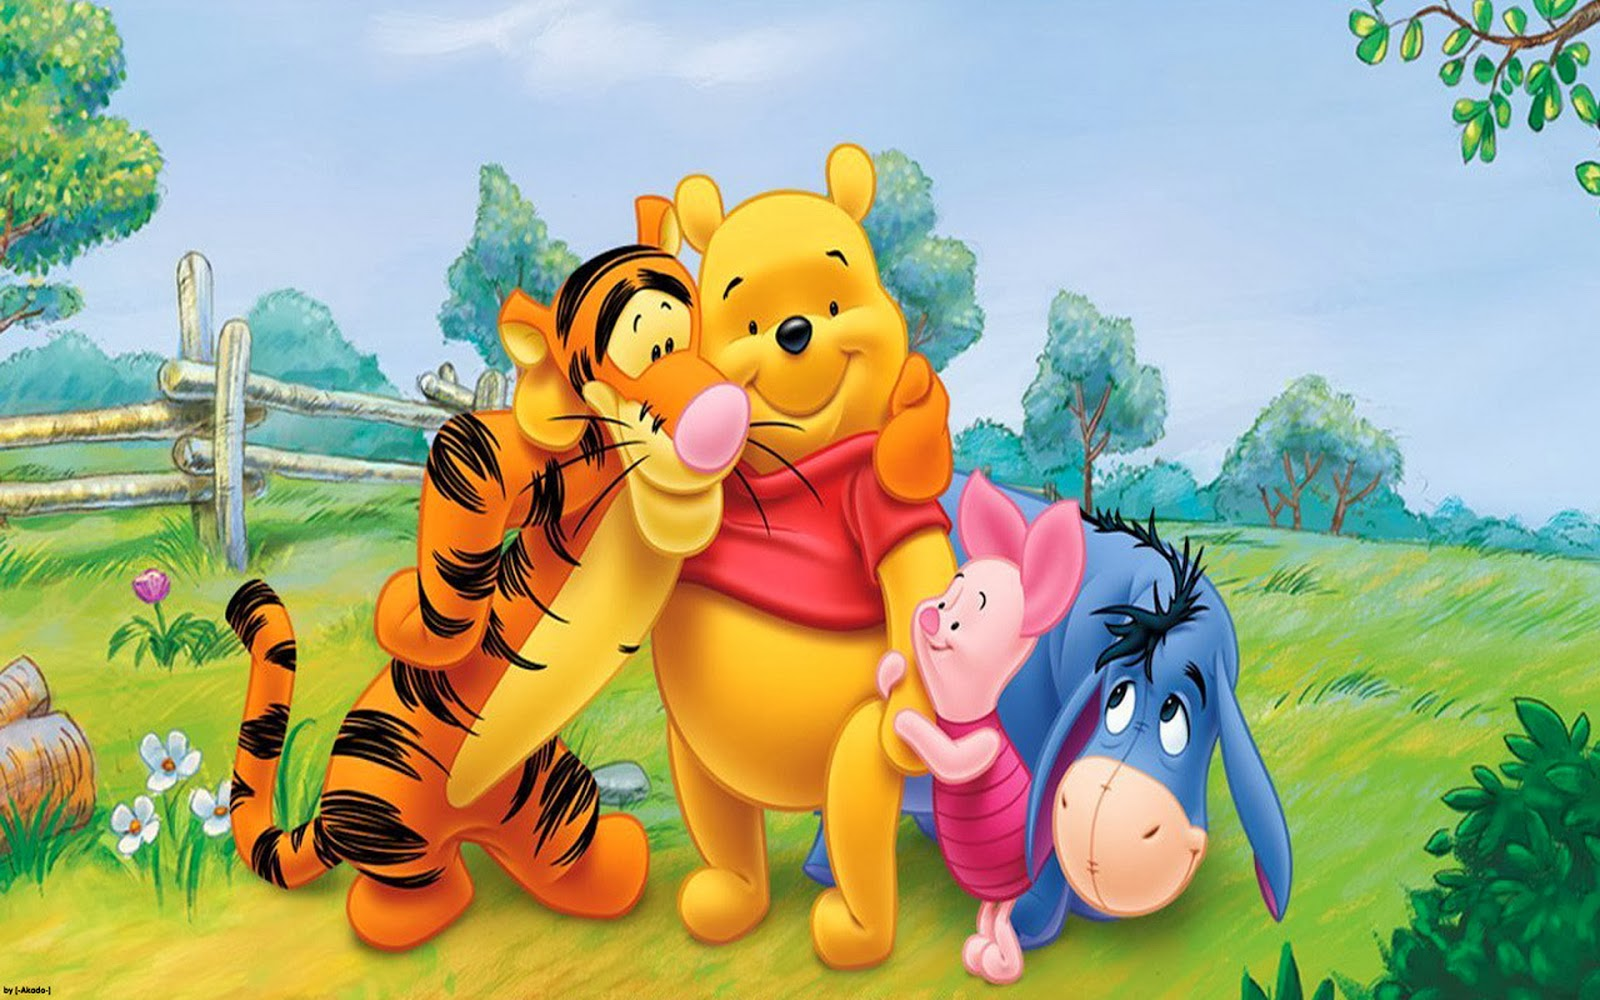 Winnie the Pooh and Friends Pictures | Kids Online World Blog Christmas Tree Decorations 2013